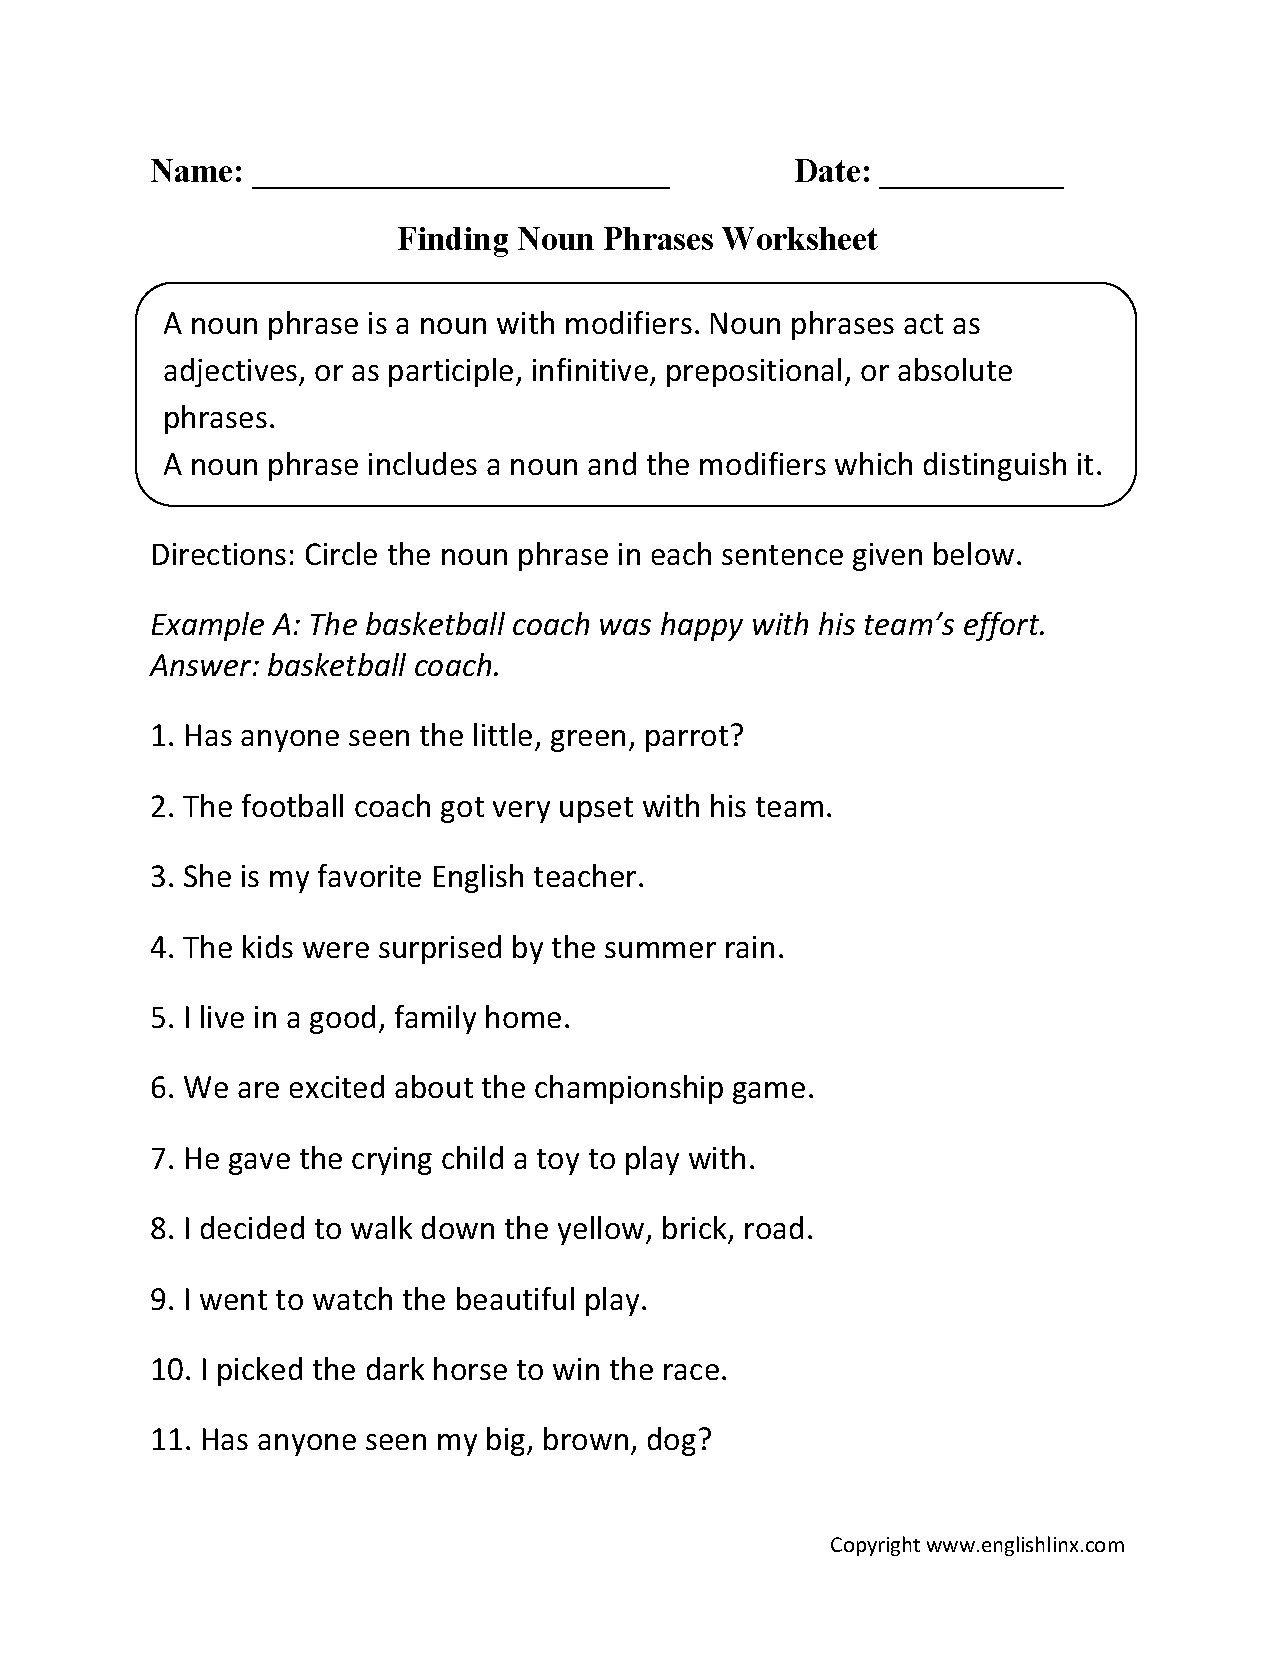 Worksheets Parts Of Speech Worksheets Middle School finding noun phrases worksheets teaching nouns pinterest free for use at school or home a is word that names person place thing idea are used in your wr